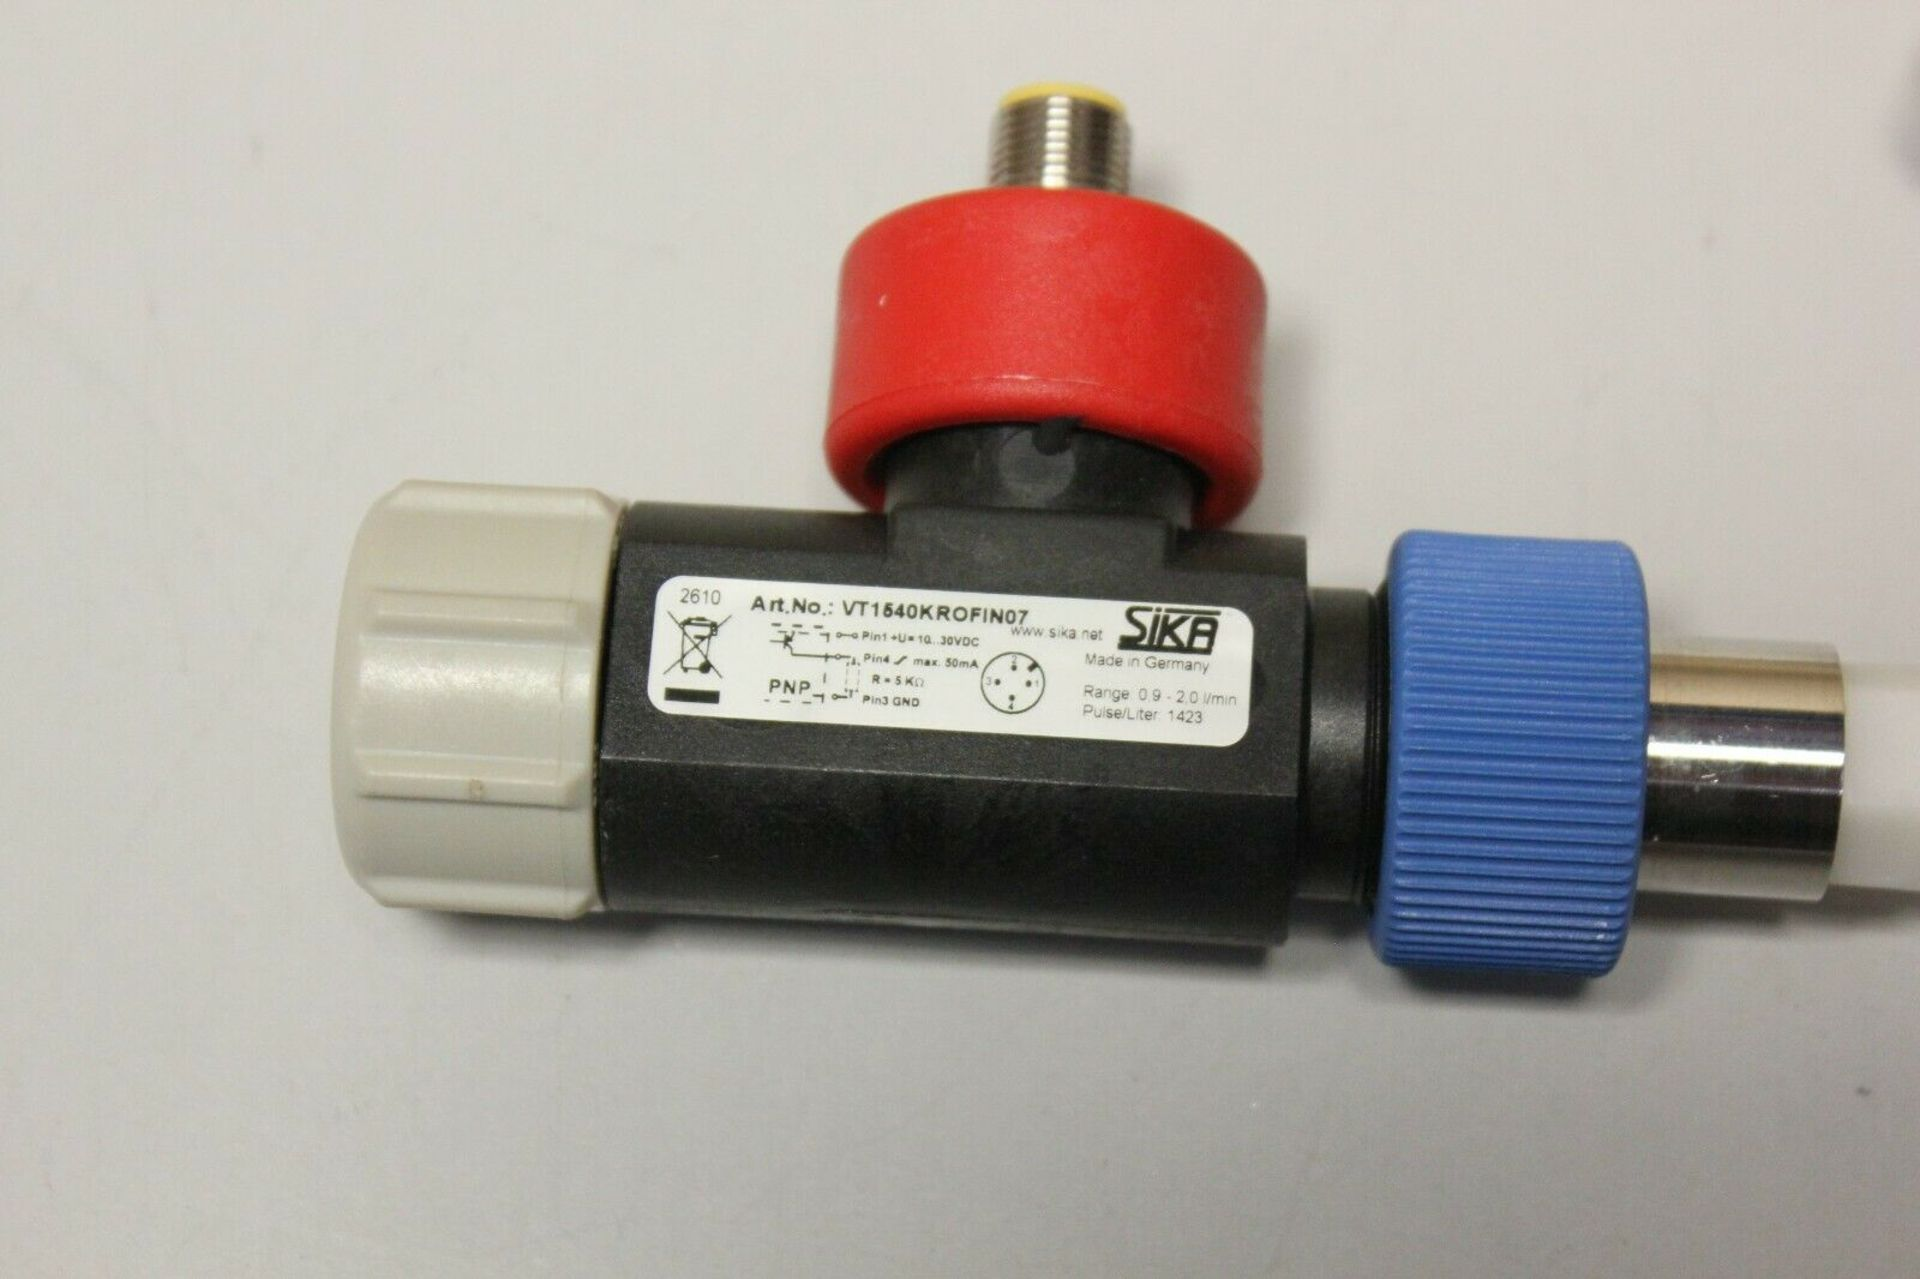 SIKA TURBINE FLOW SENSOR WITH CABLE - Image 3 of 10